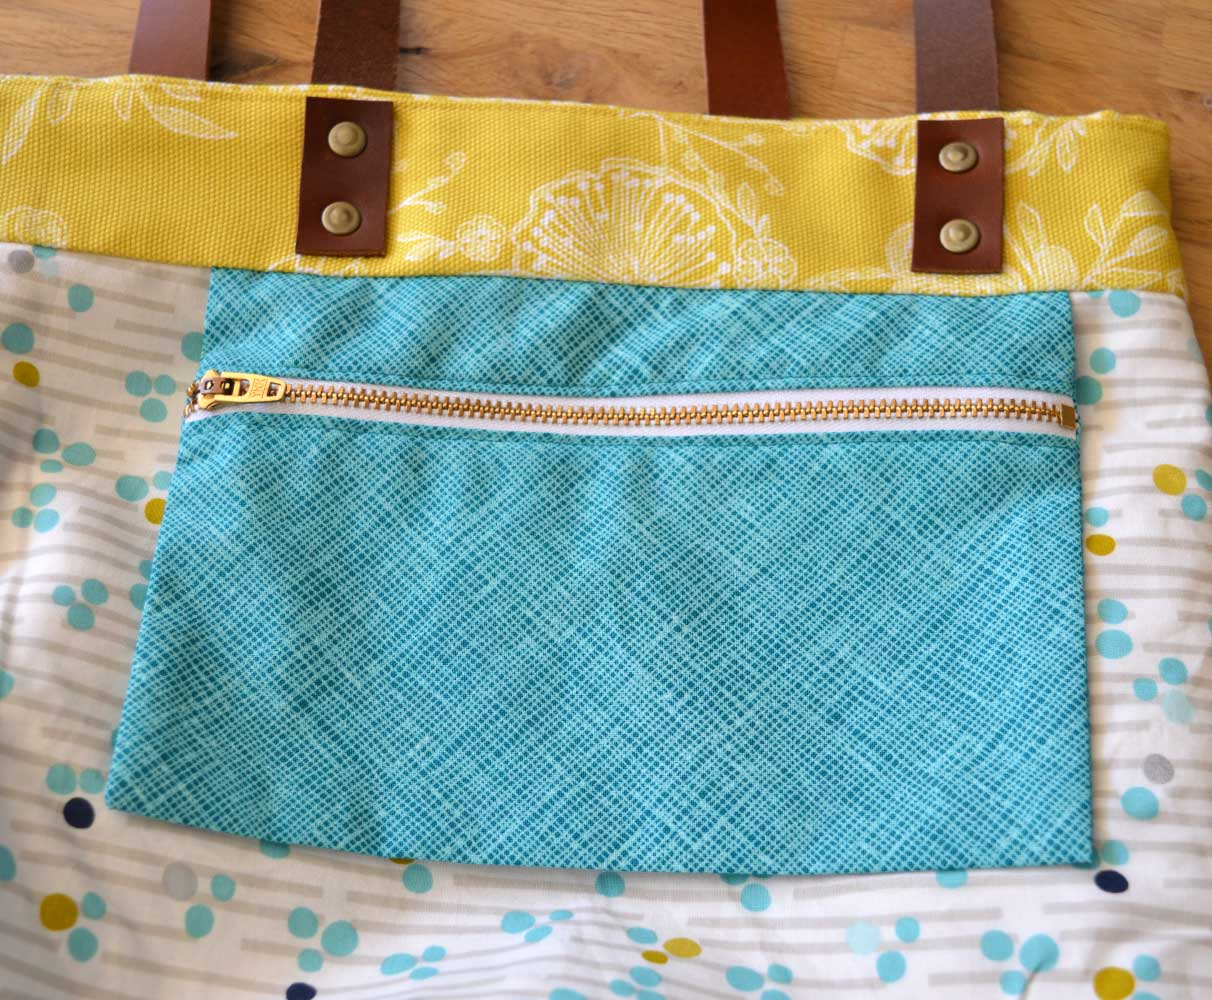 Genoa Tote Bag Workshop - zip pocket | Holm Sown